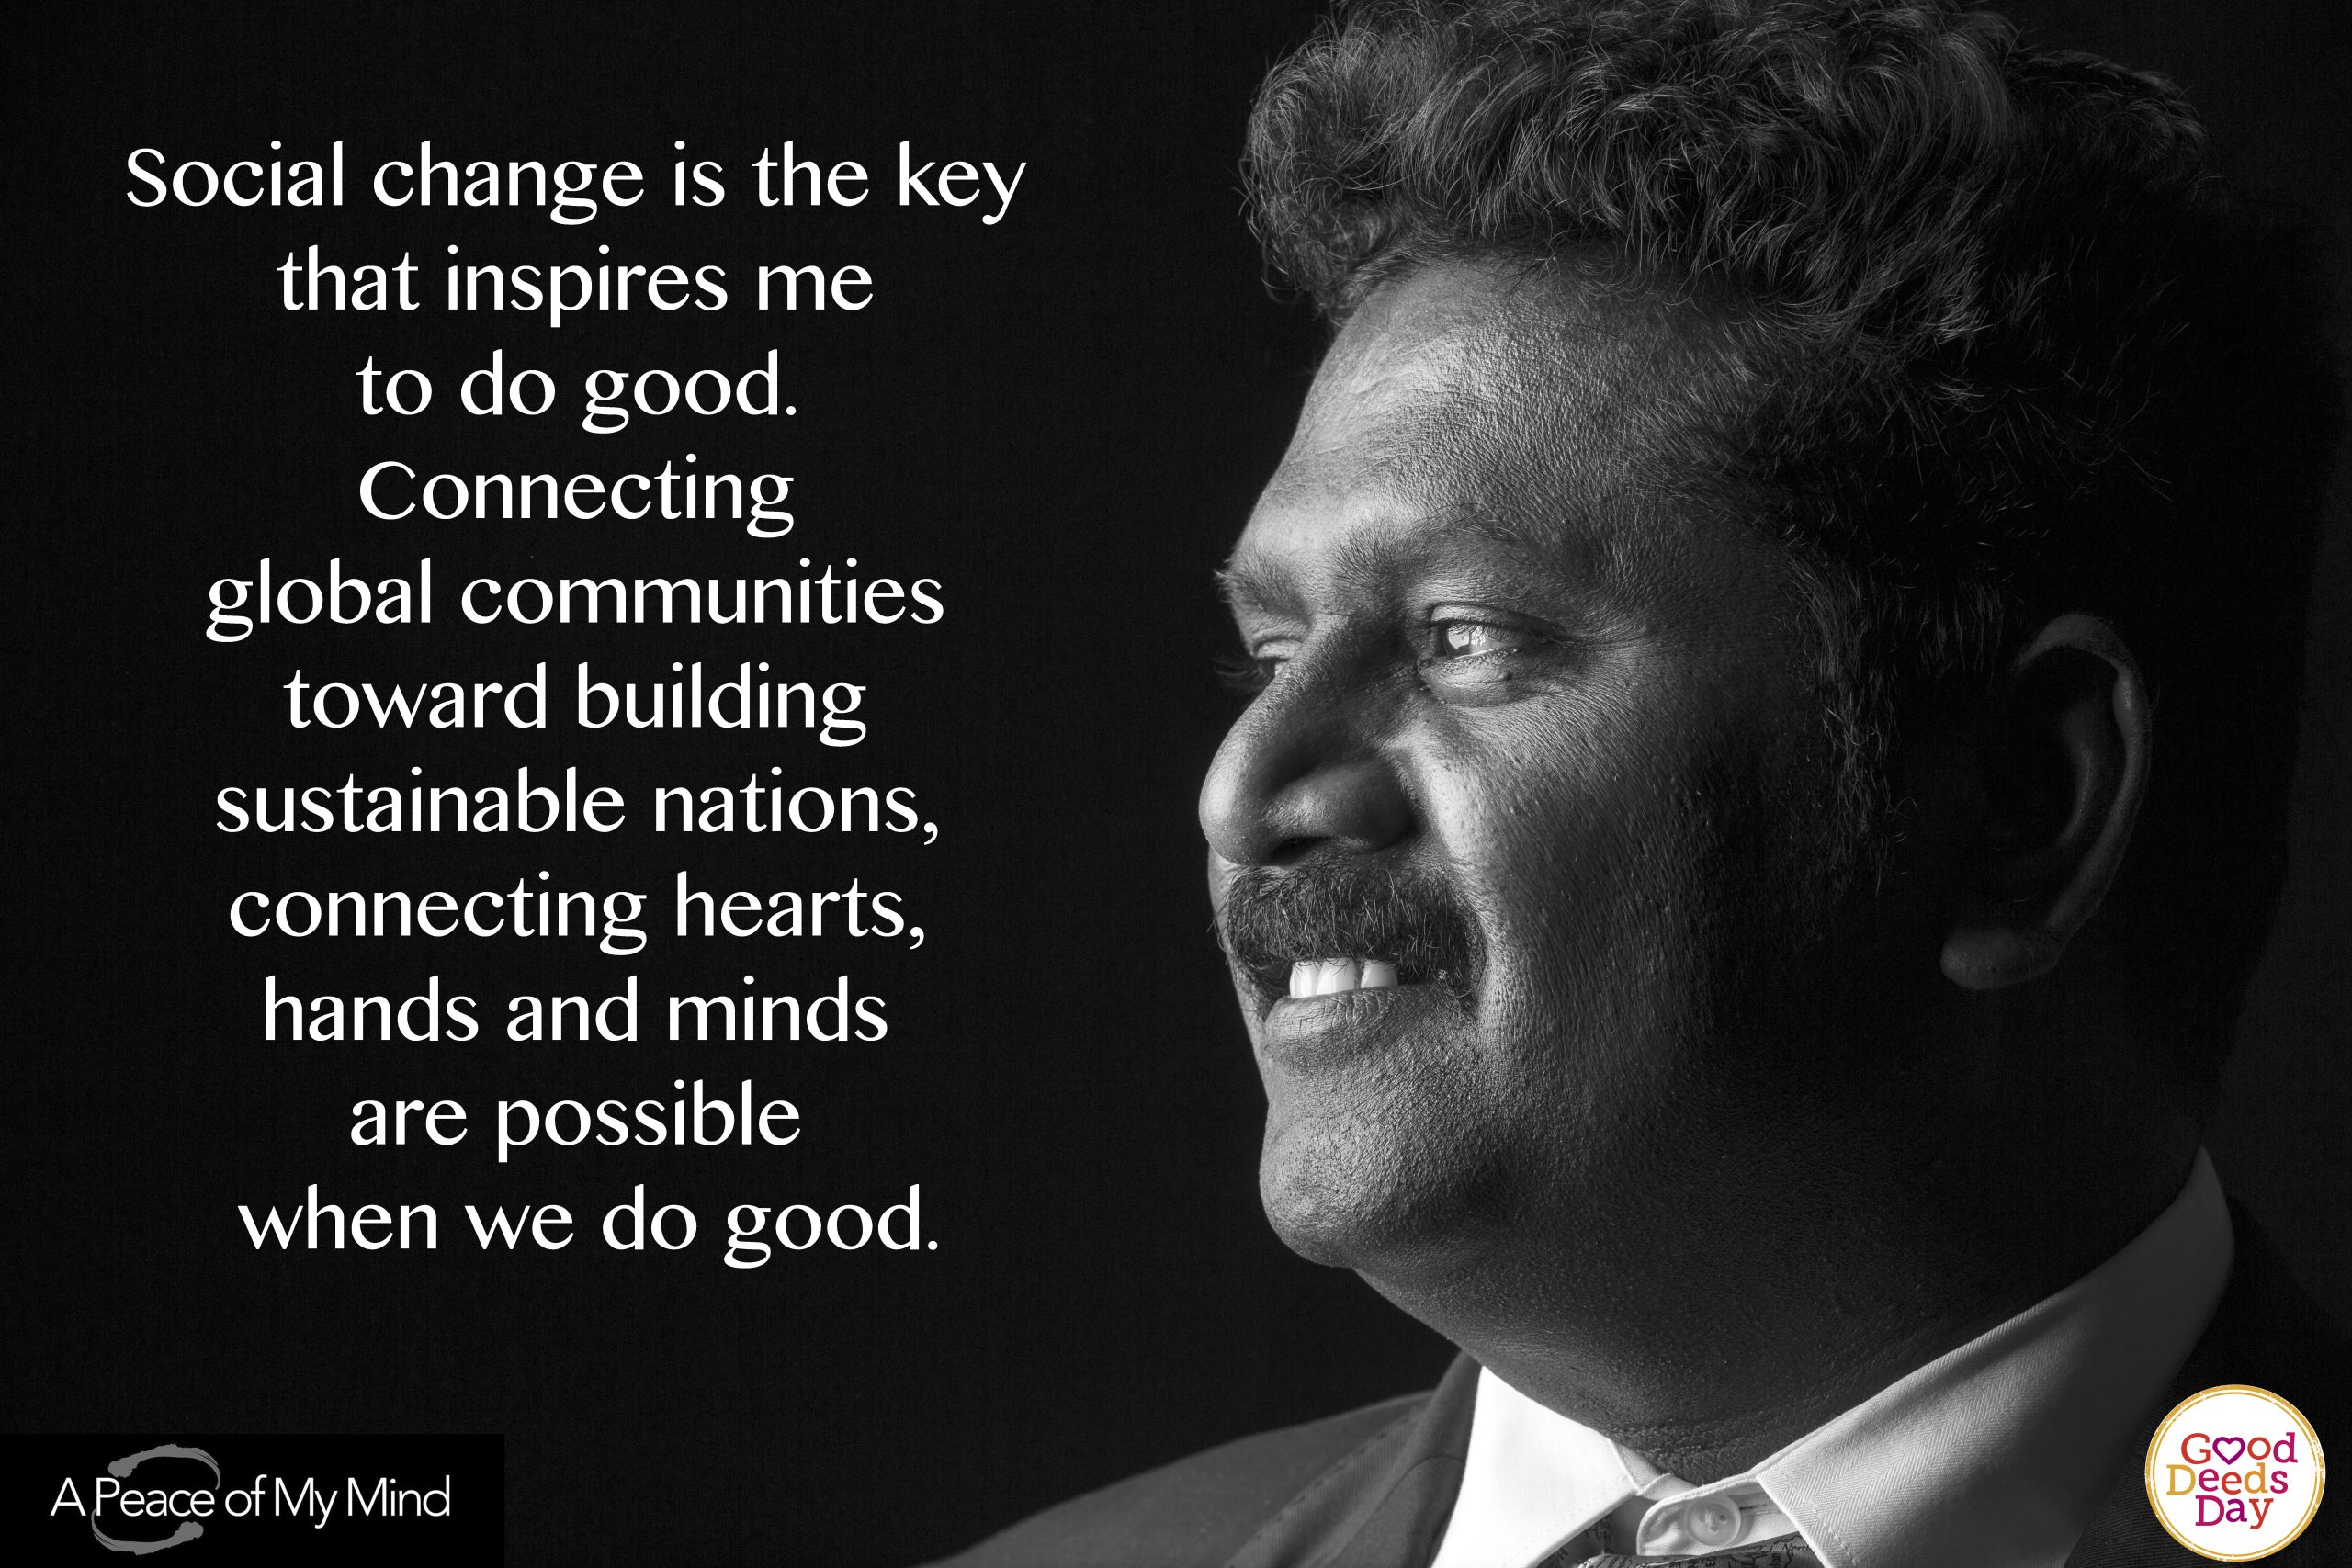 Social change is the key that inspires me to do good. Connecting global communities toward building sustainable nations, connecting hearts, hands and minds are possible when we are good.